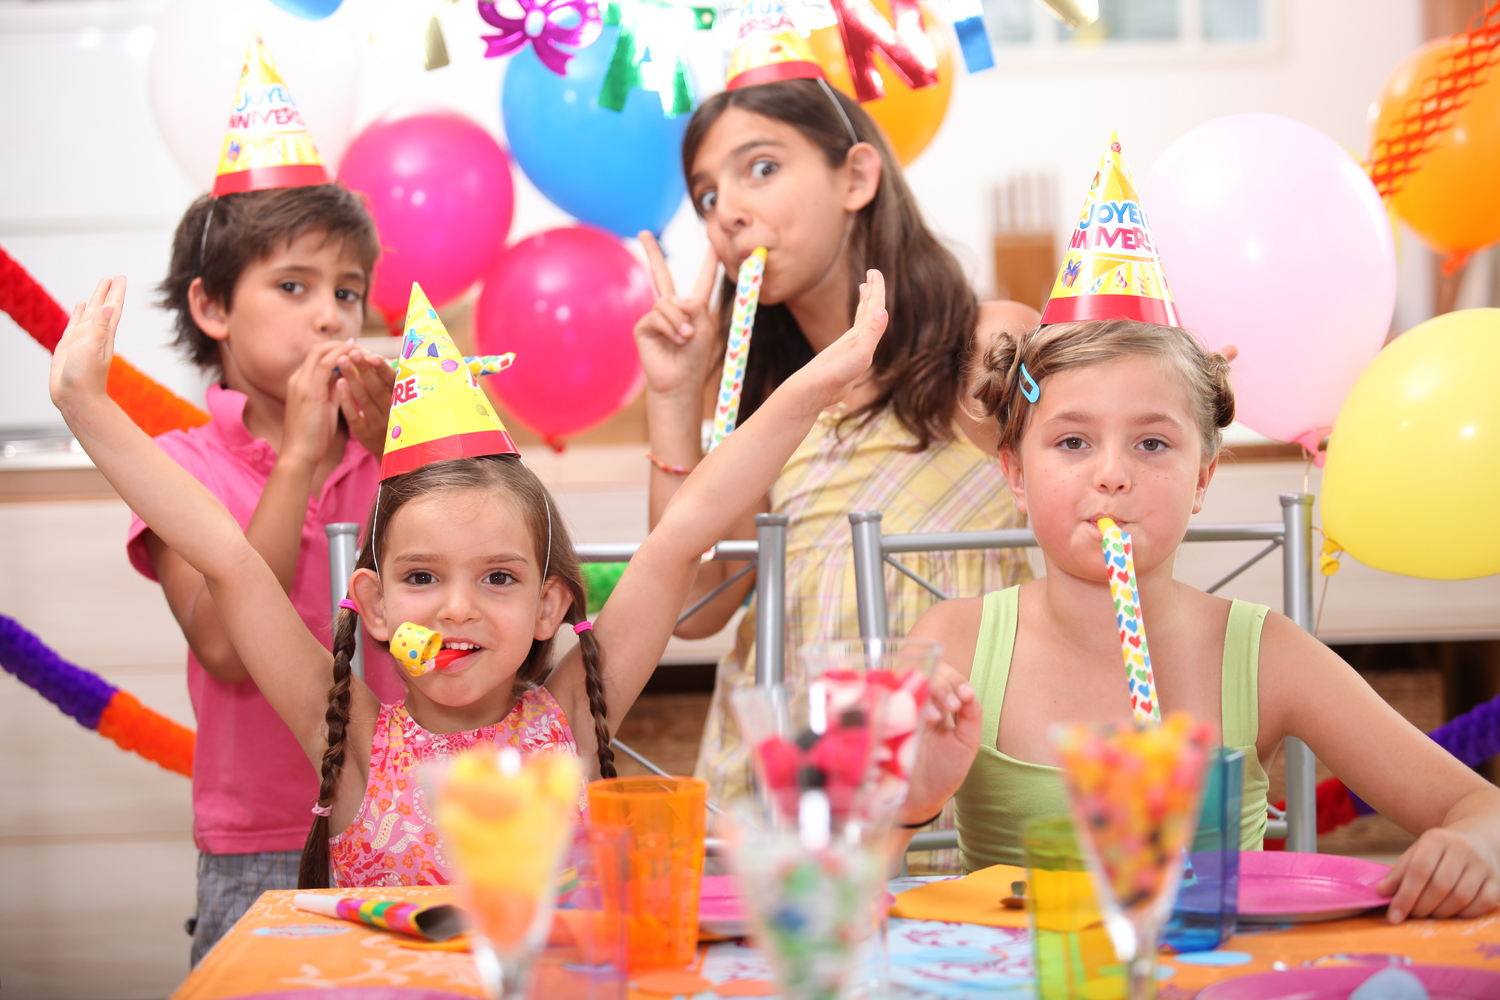 Bowling Birthday Parties And More Fun Ideas Providence RI - Children's birthday parties ri